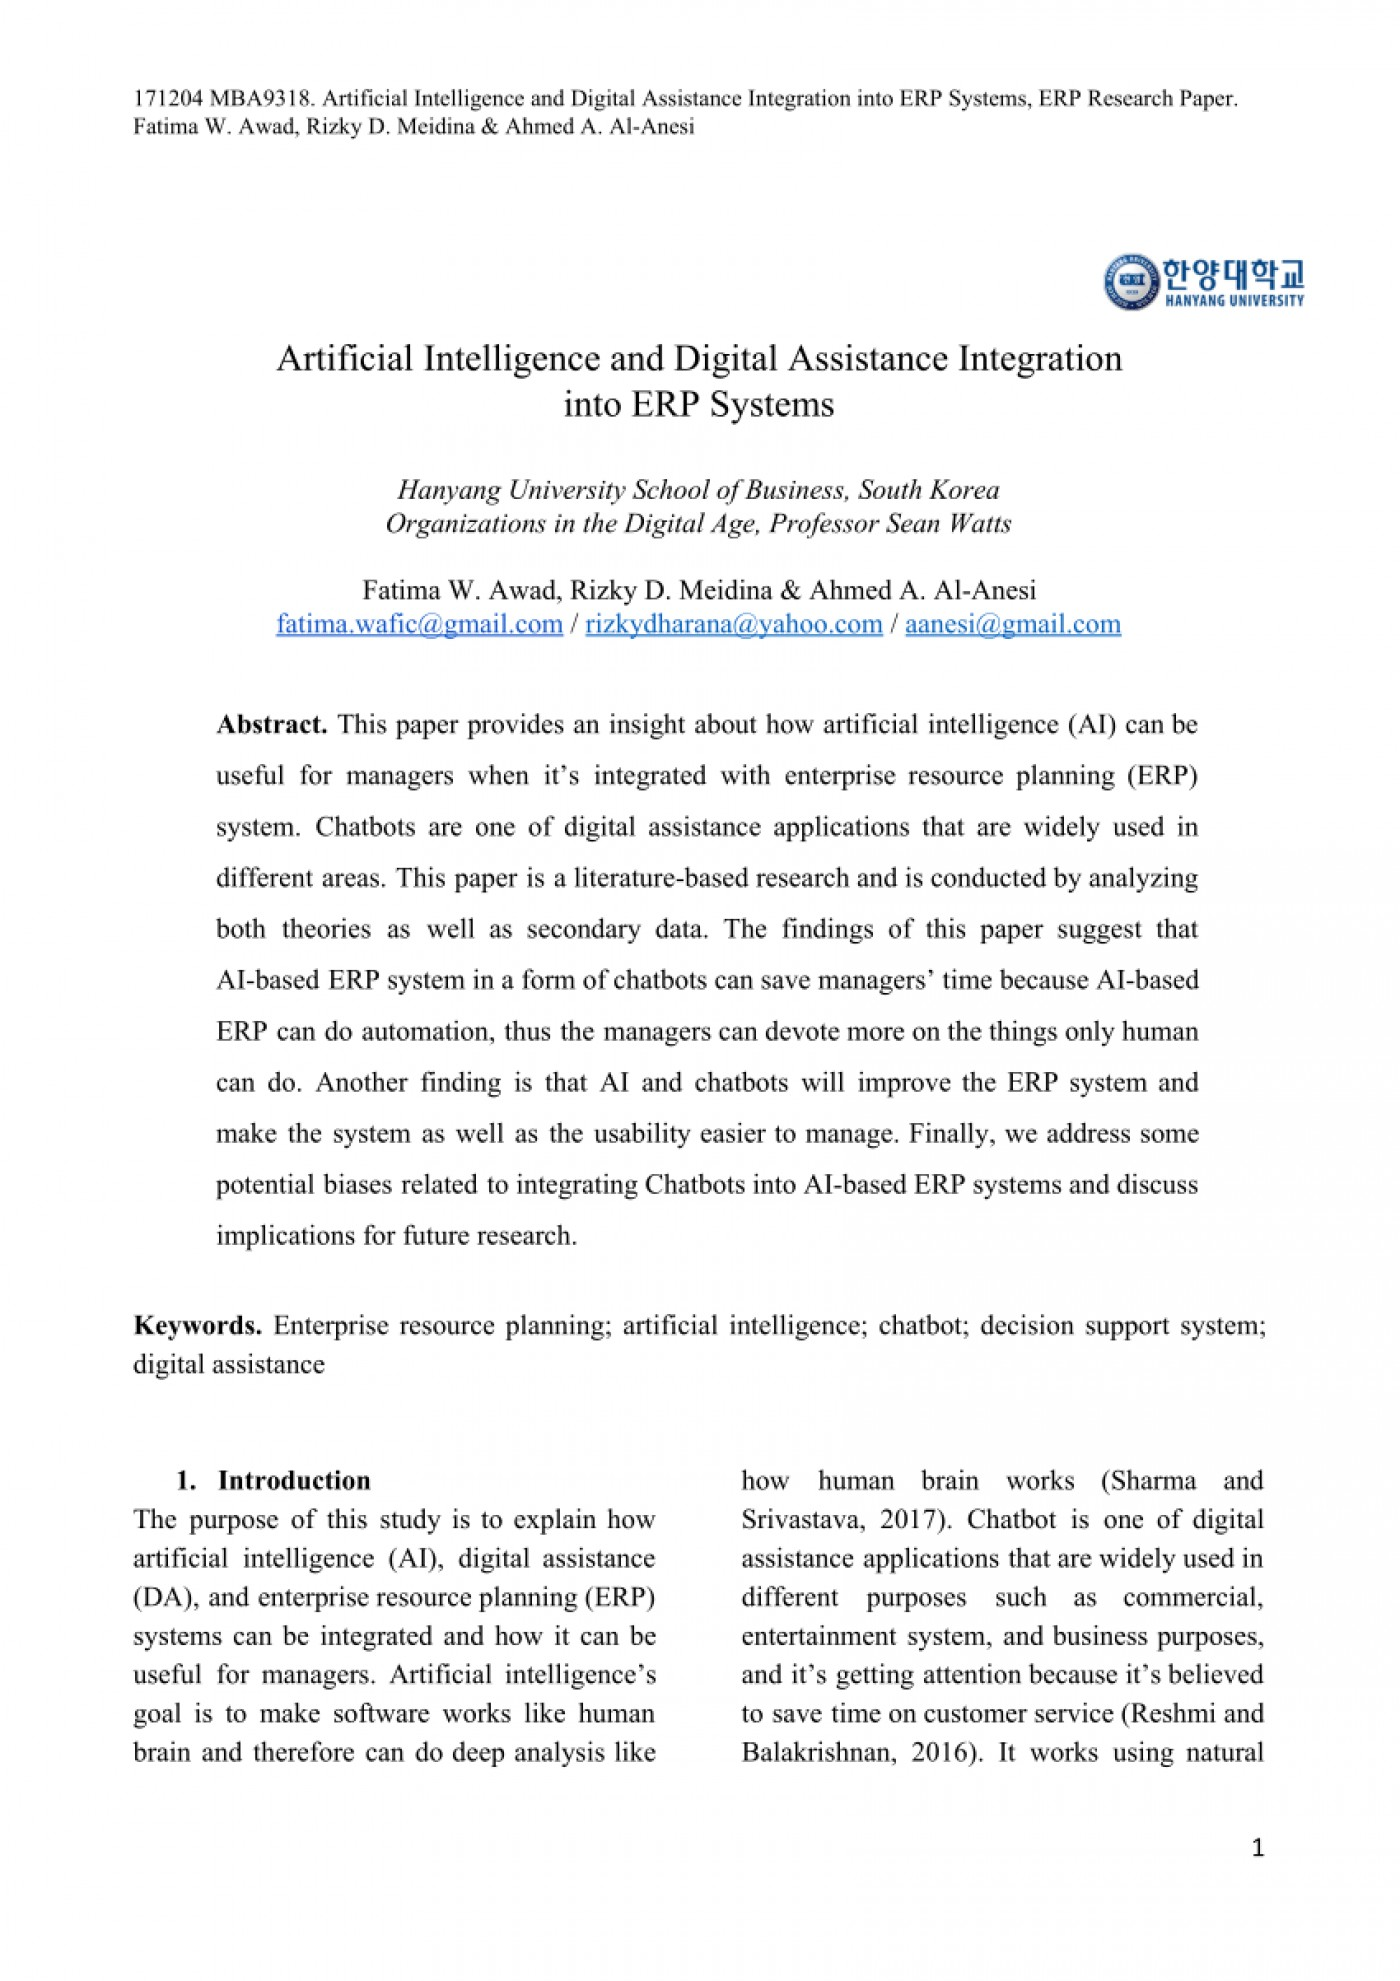 001 Artificial Intelligence Research Paper Topics Archaicawful Pdf 2018 1400